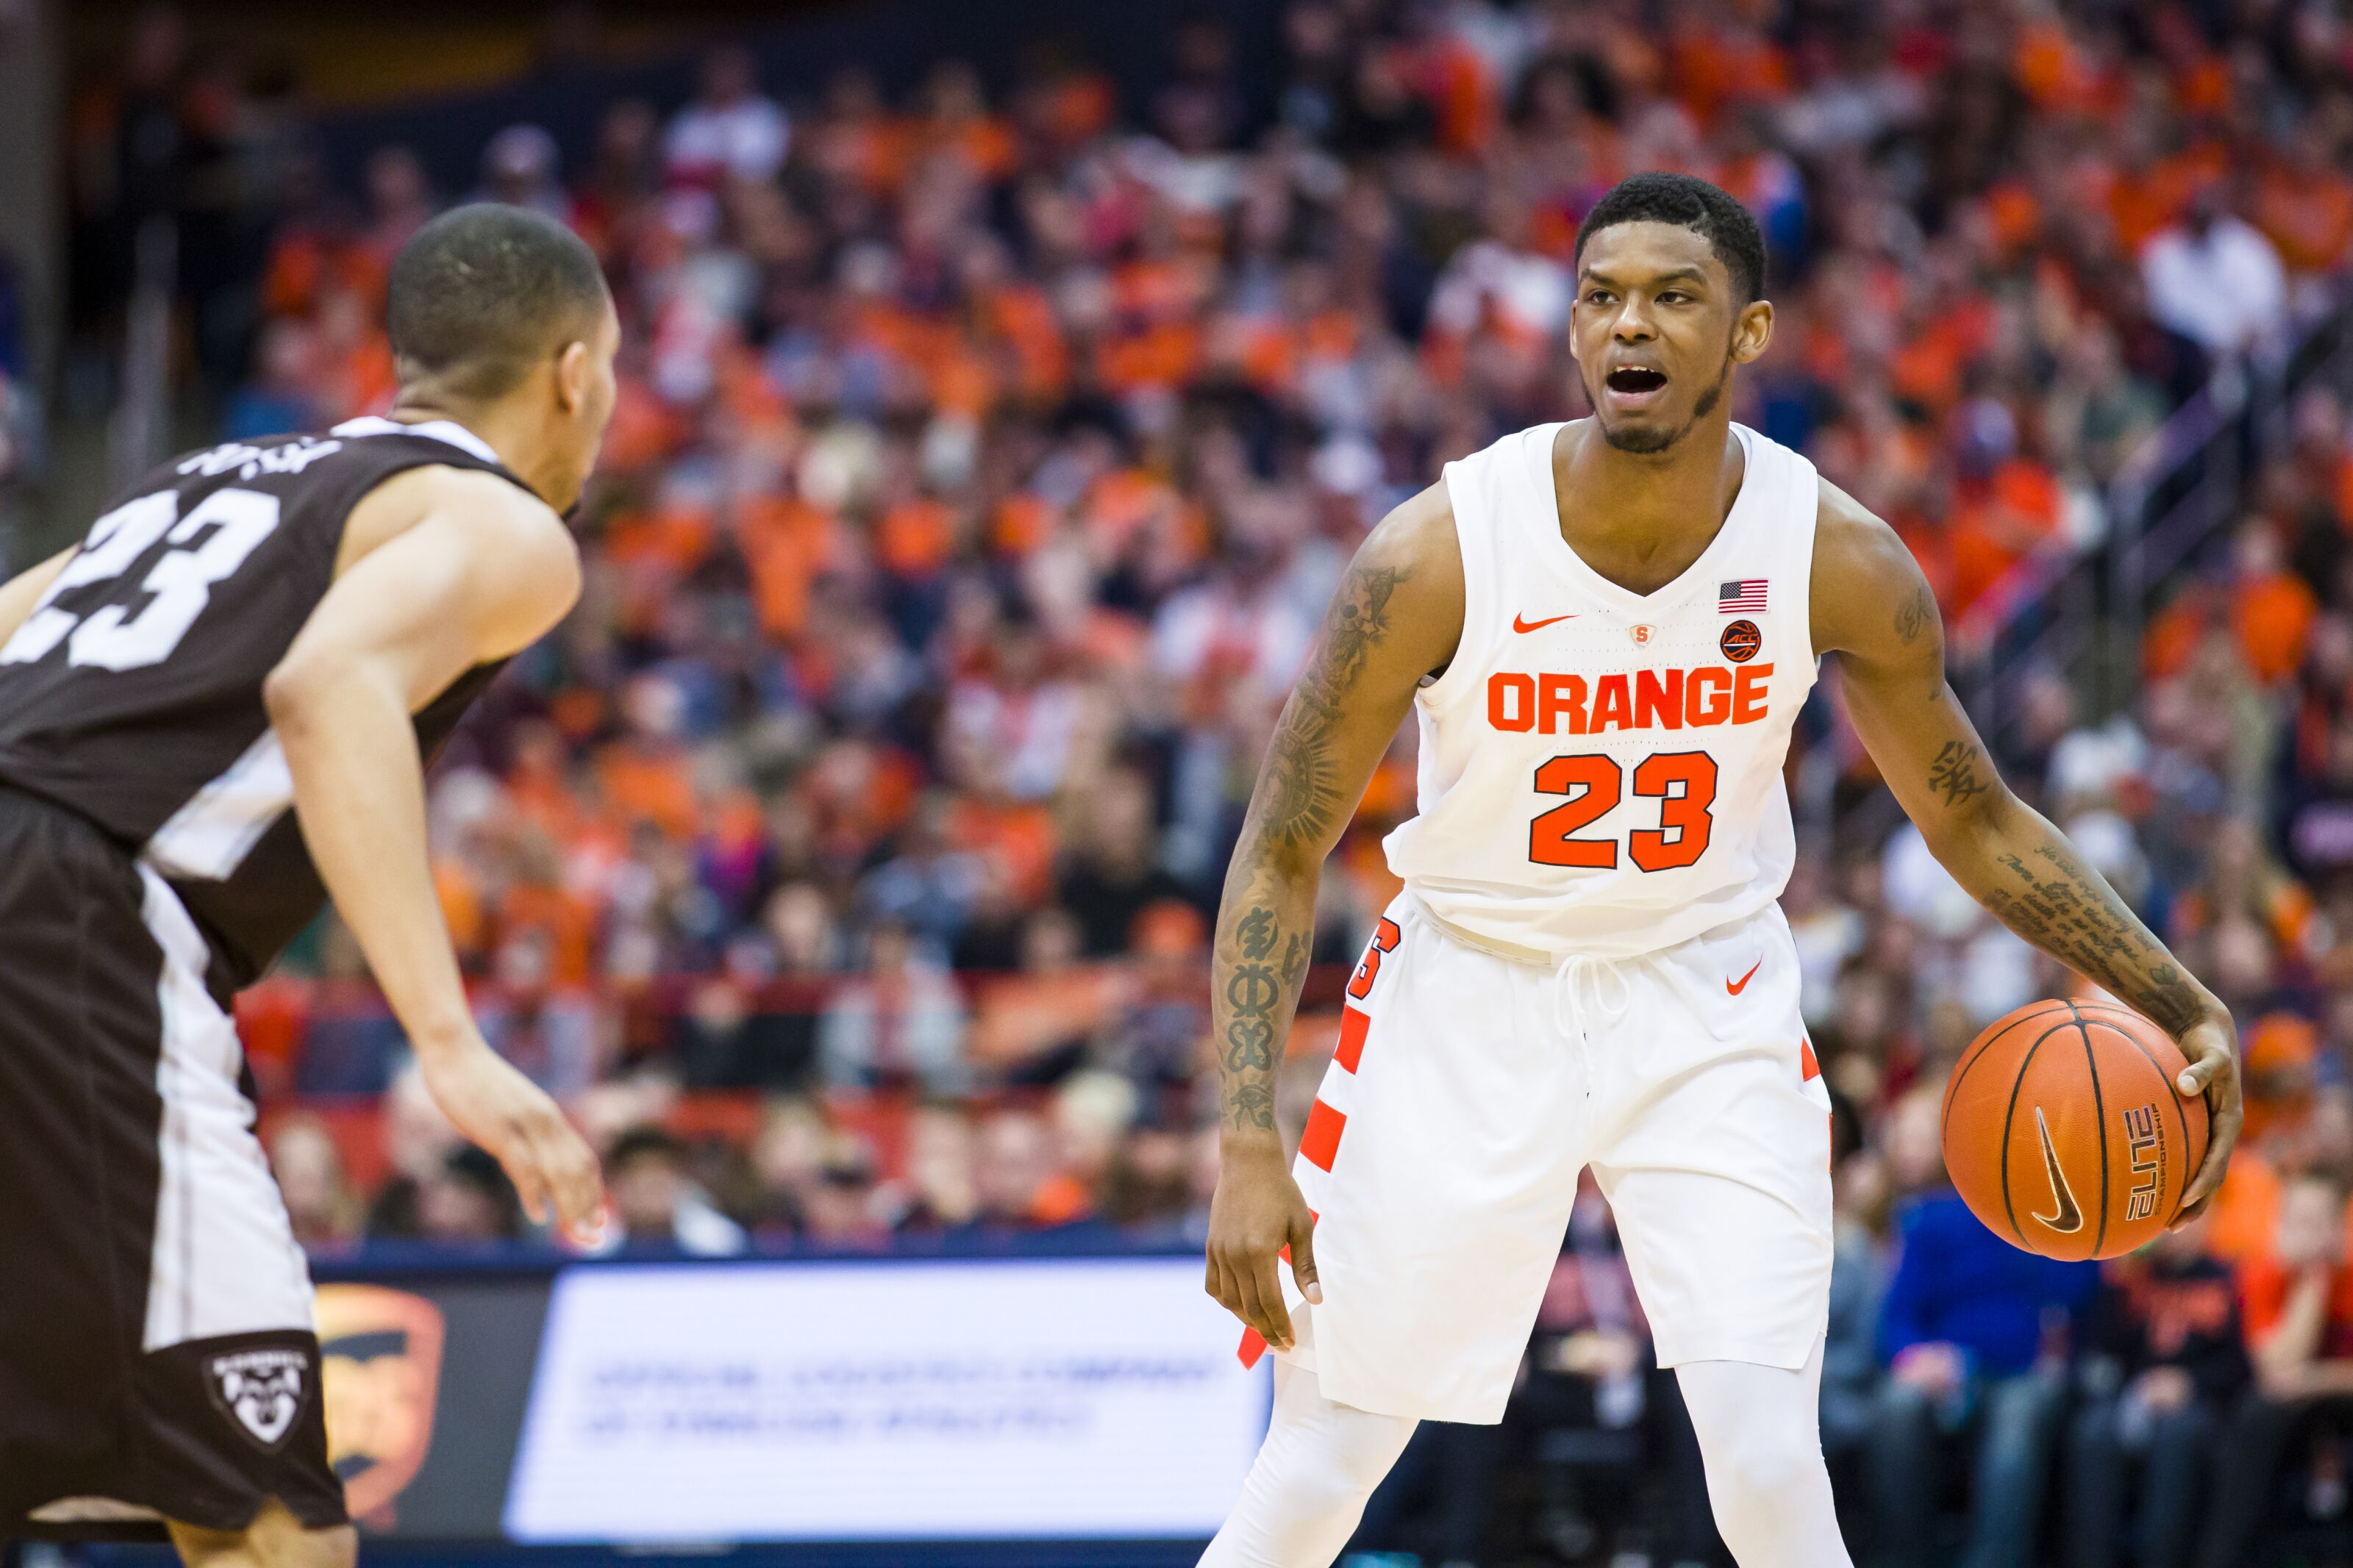 Syracuse Basketball Top 5 Takeaways From Pitt Win On The Road